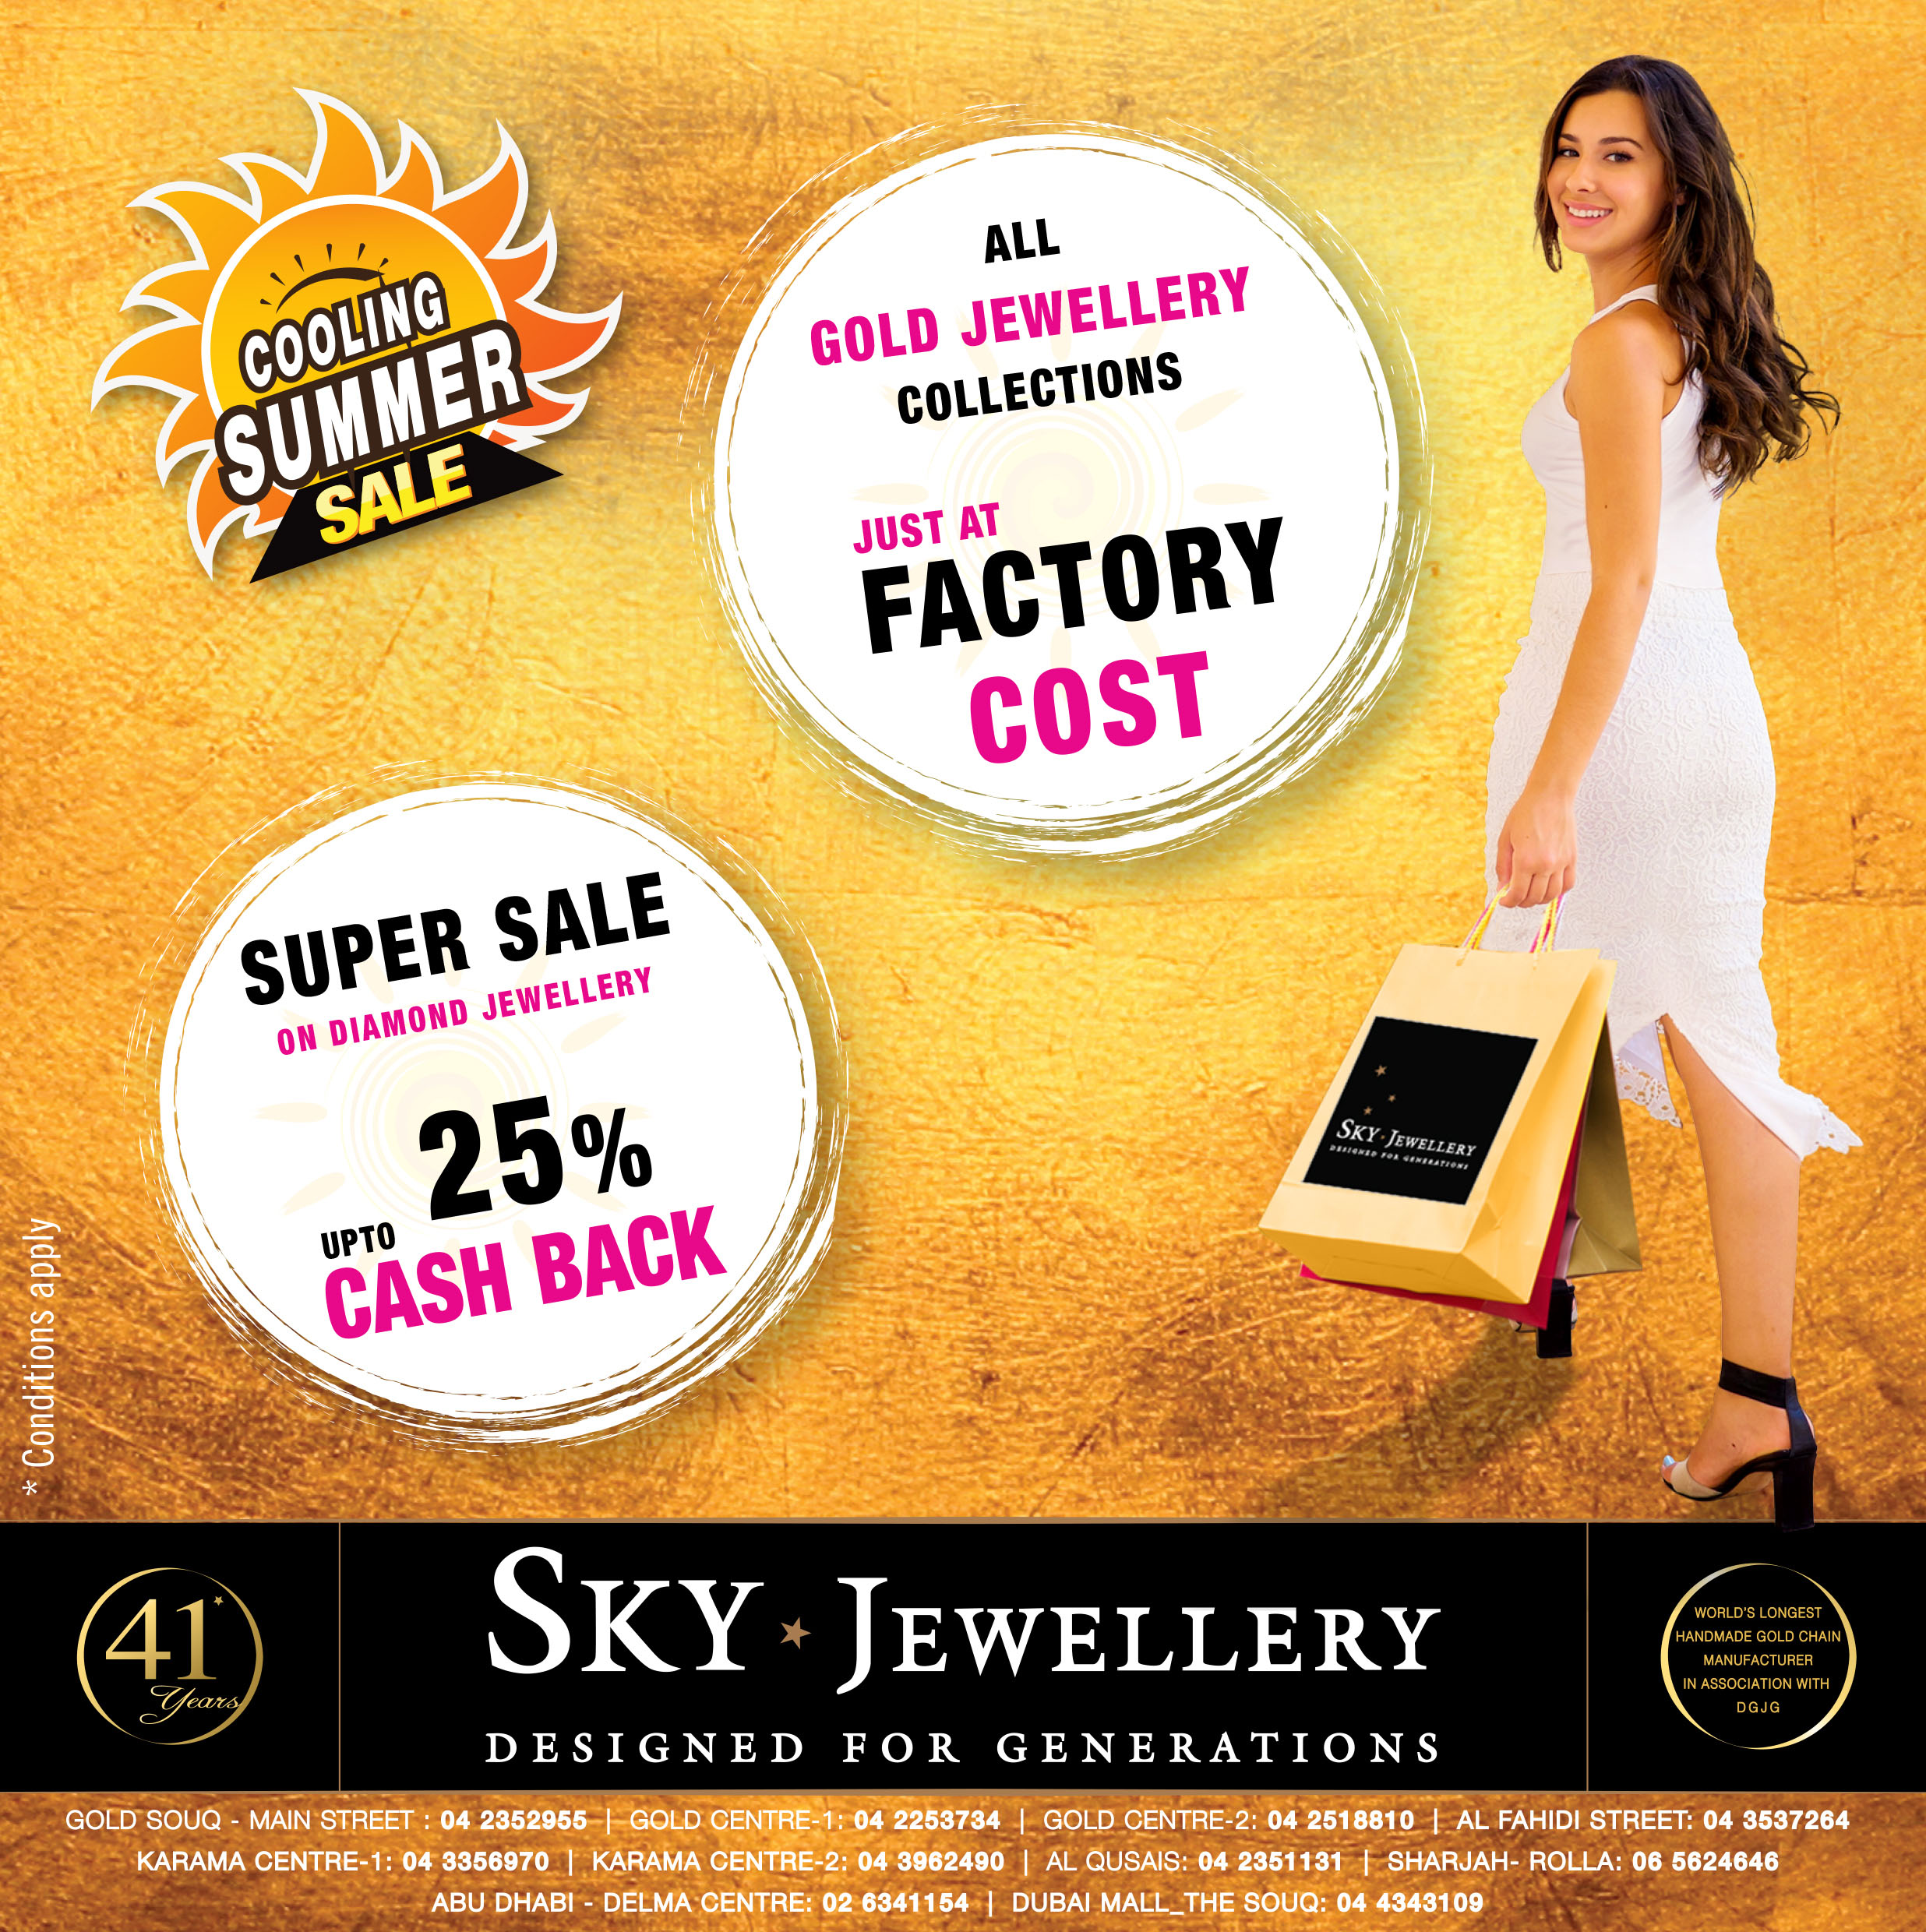 Summer Sale at Sky Jewellery! – Sky Jewellery   Designed for generations